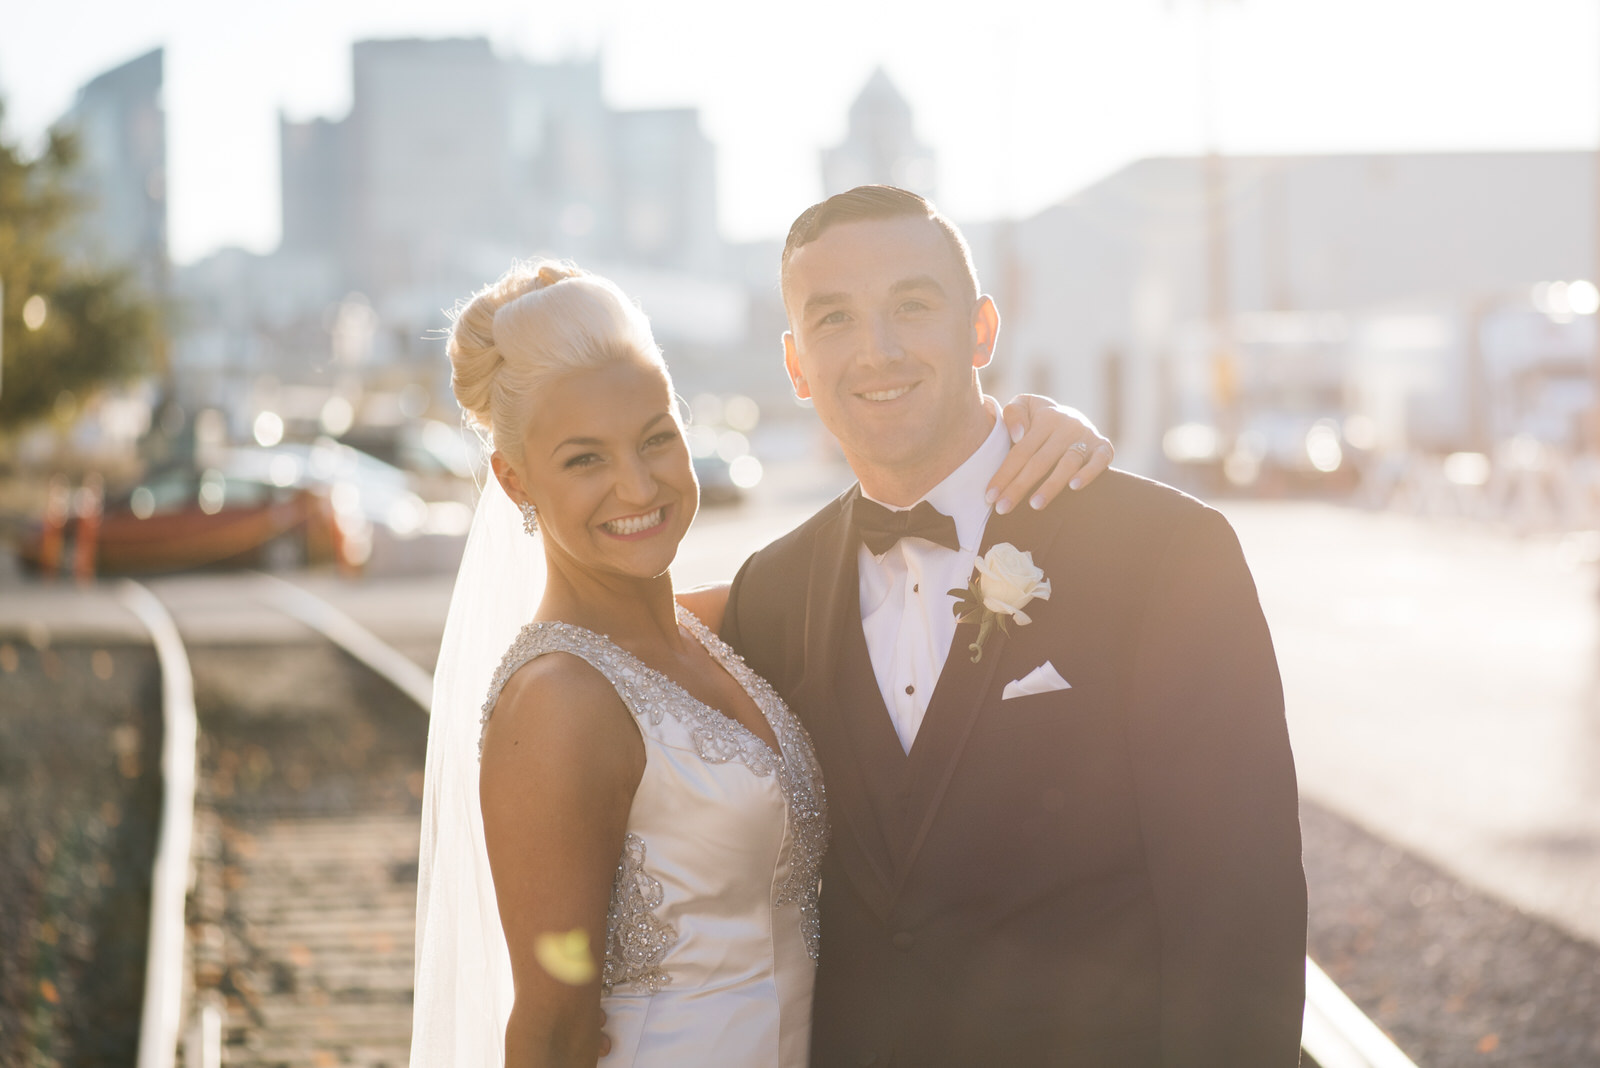 hilton_garden_inn_southpointe_pittsburgh_weddings_72.jpg